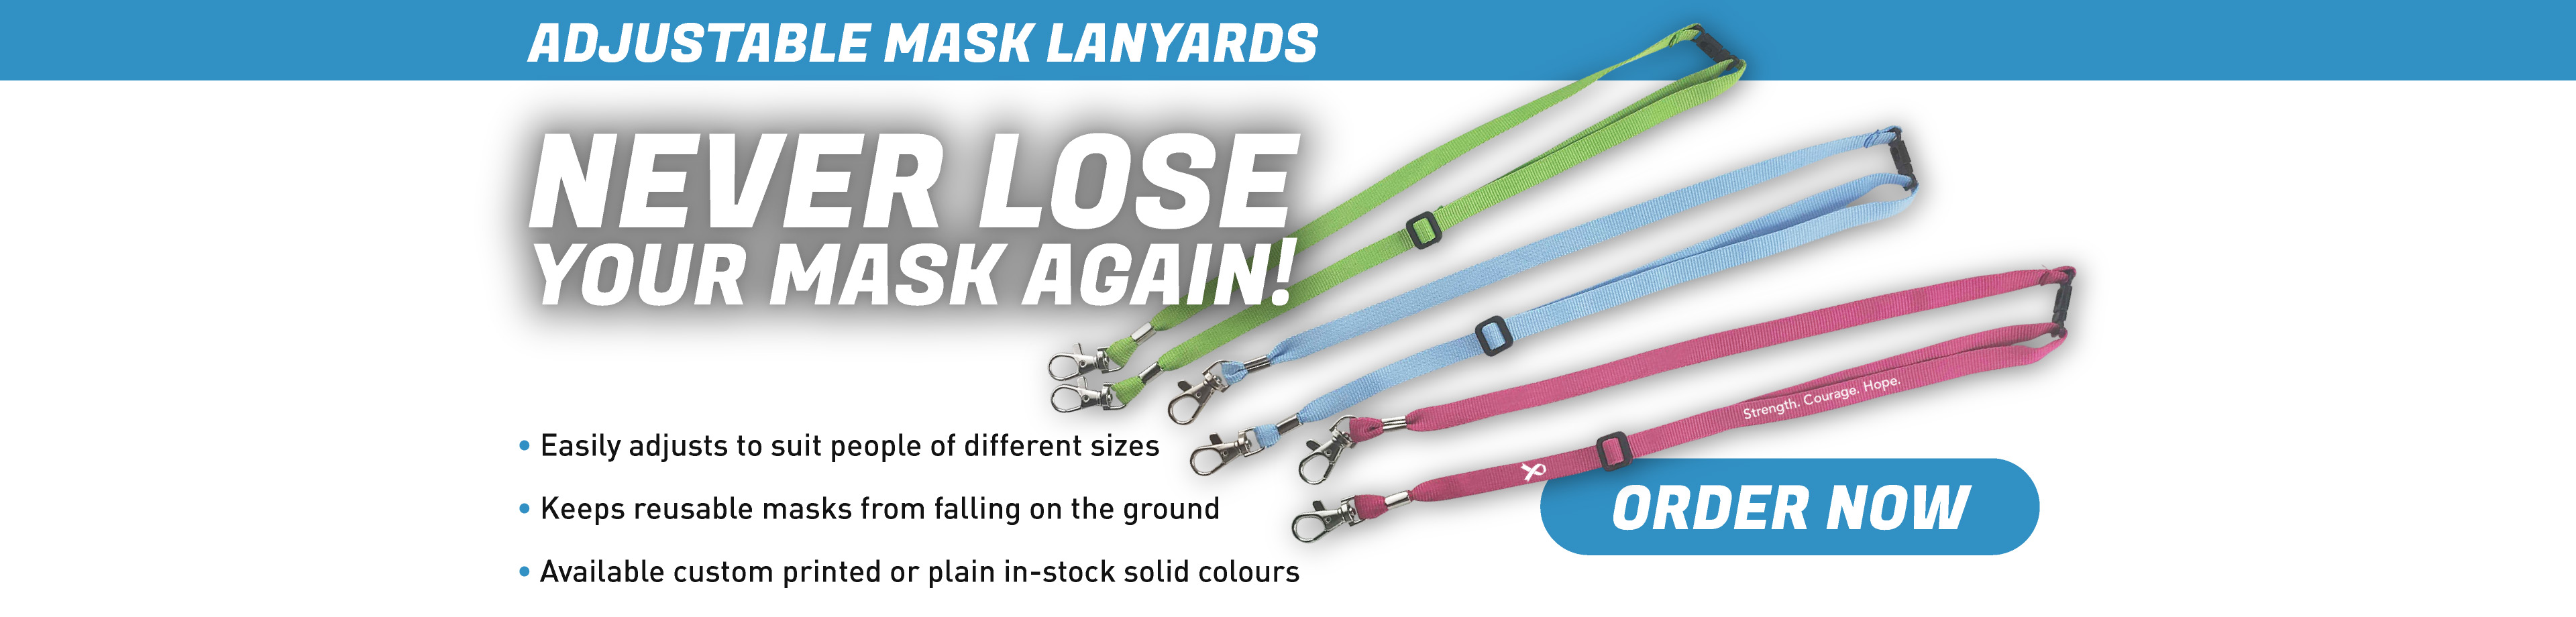 Adjustable Mask Lanyards - Never lose your mask again! These new products are available in plain solid colours or custom printed with your logo!